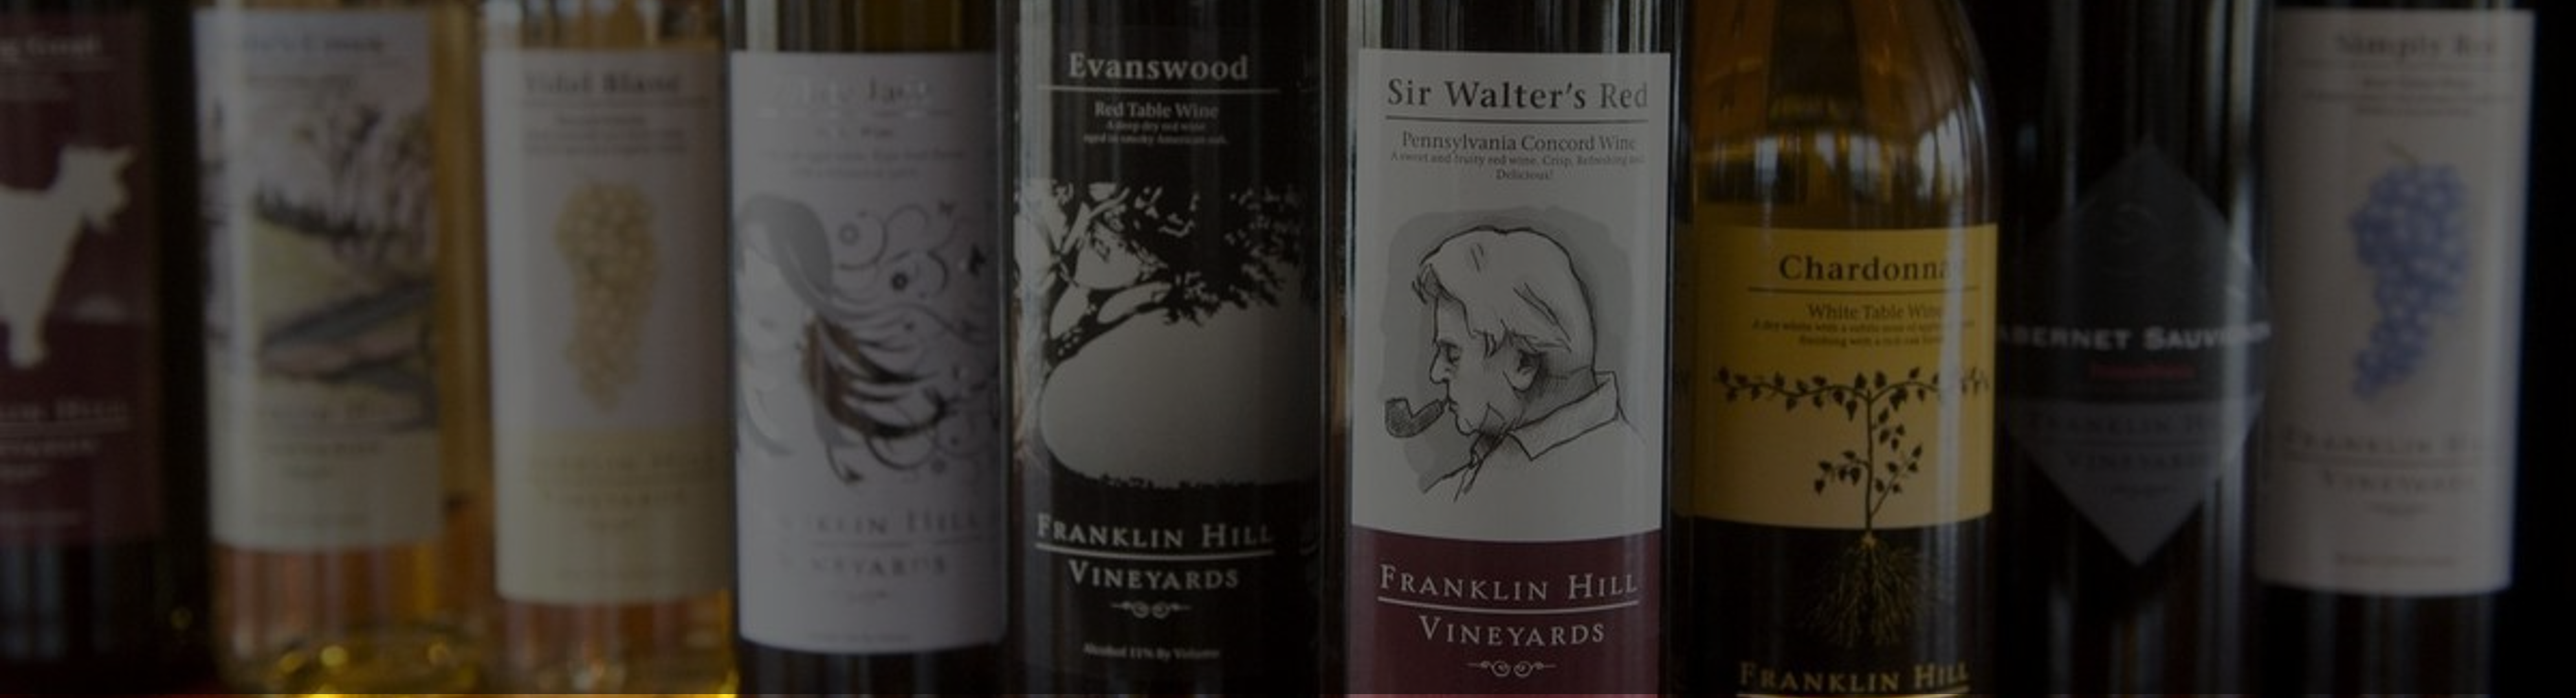 Franklin Hill Vineyards Updates